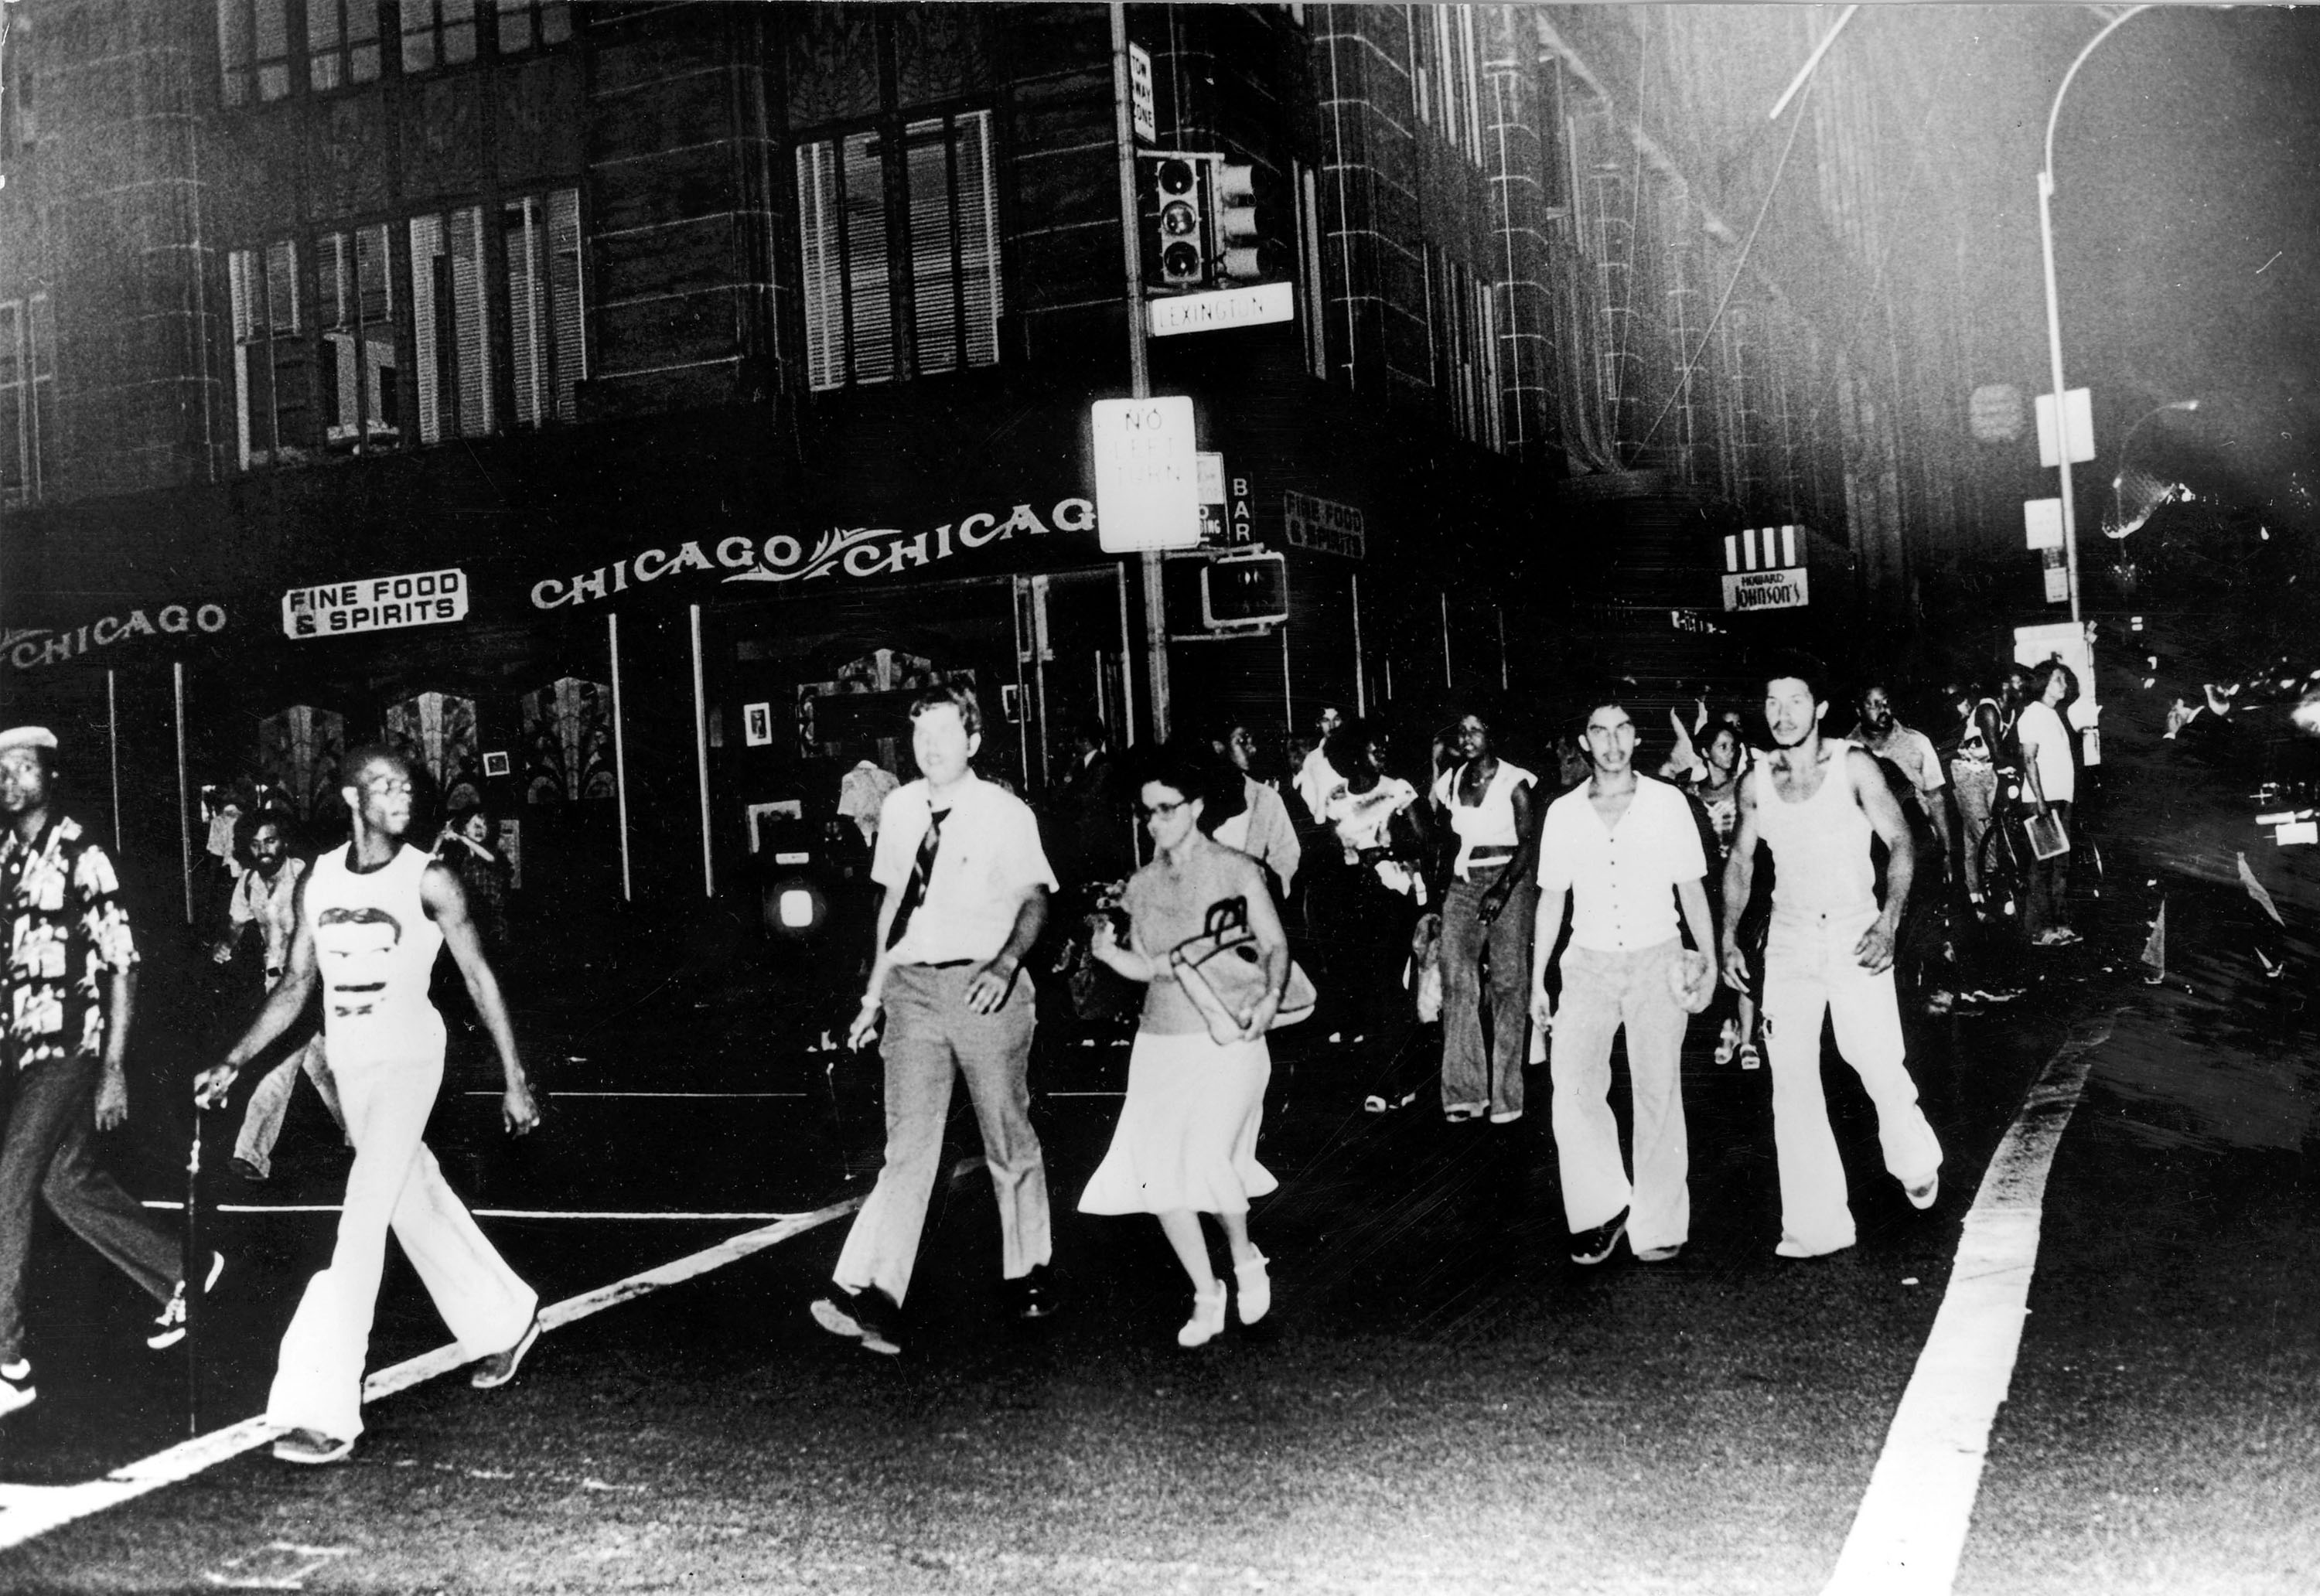 The blackout that year led to widespread arson, looting and riots across the city.